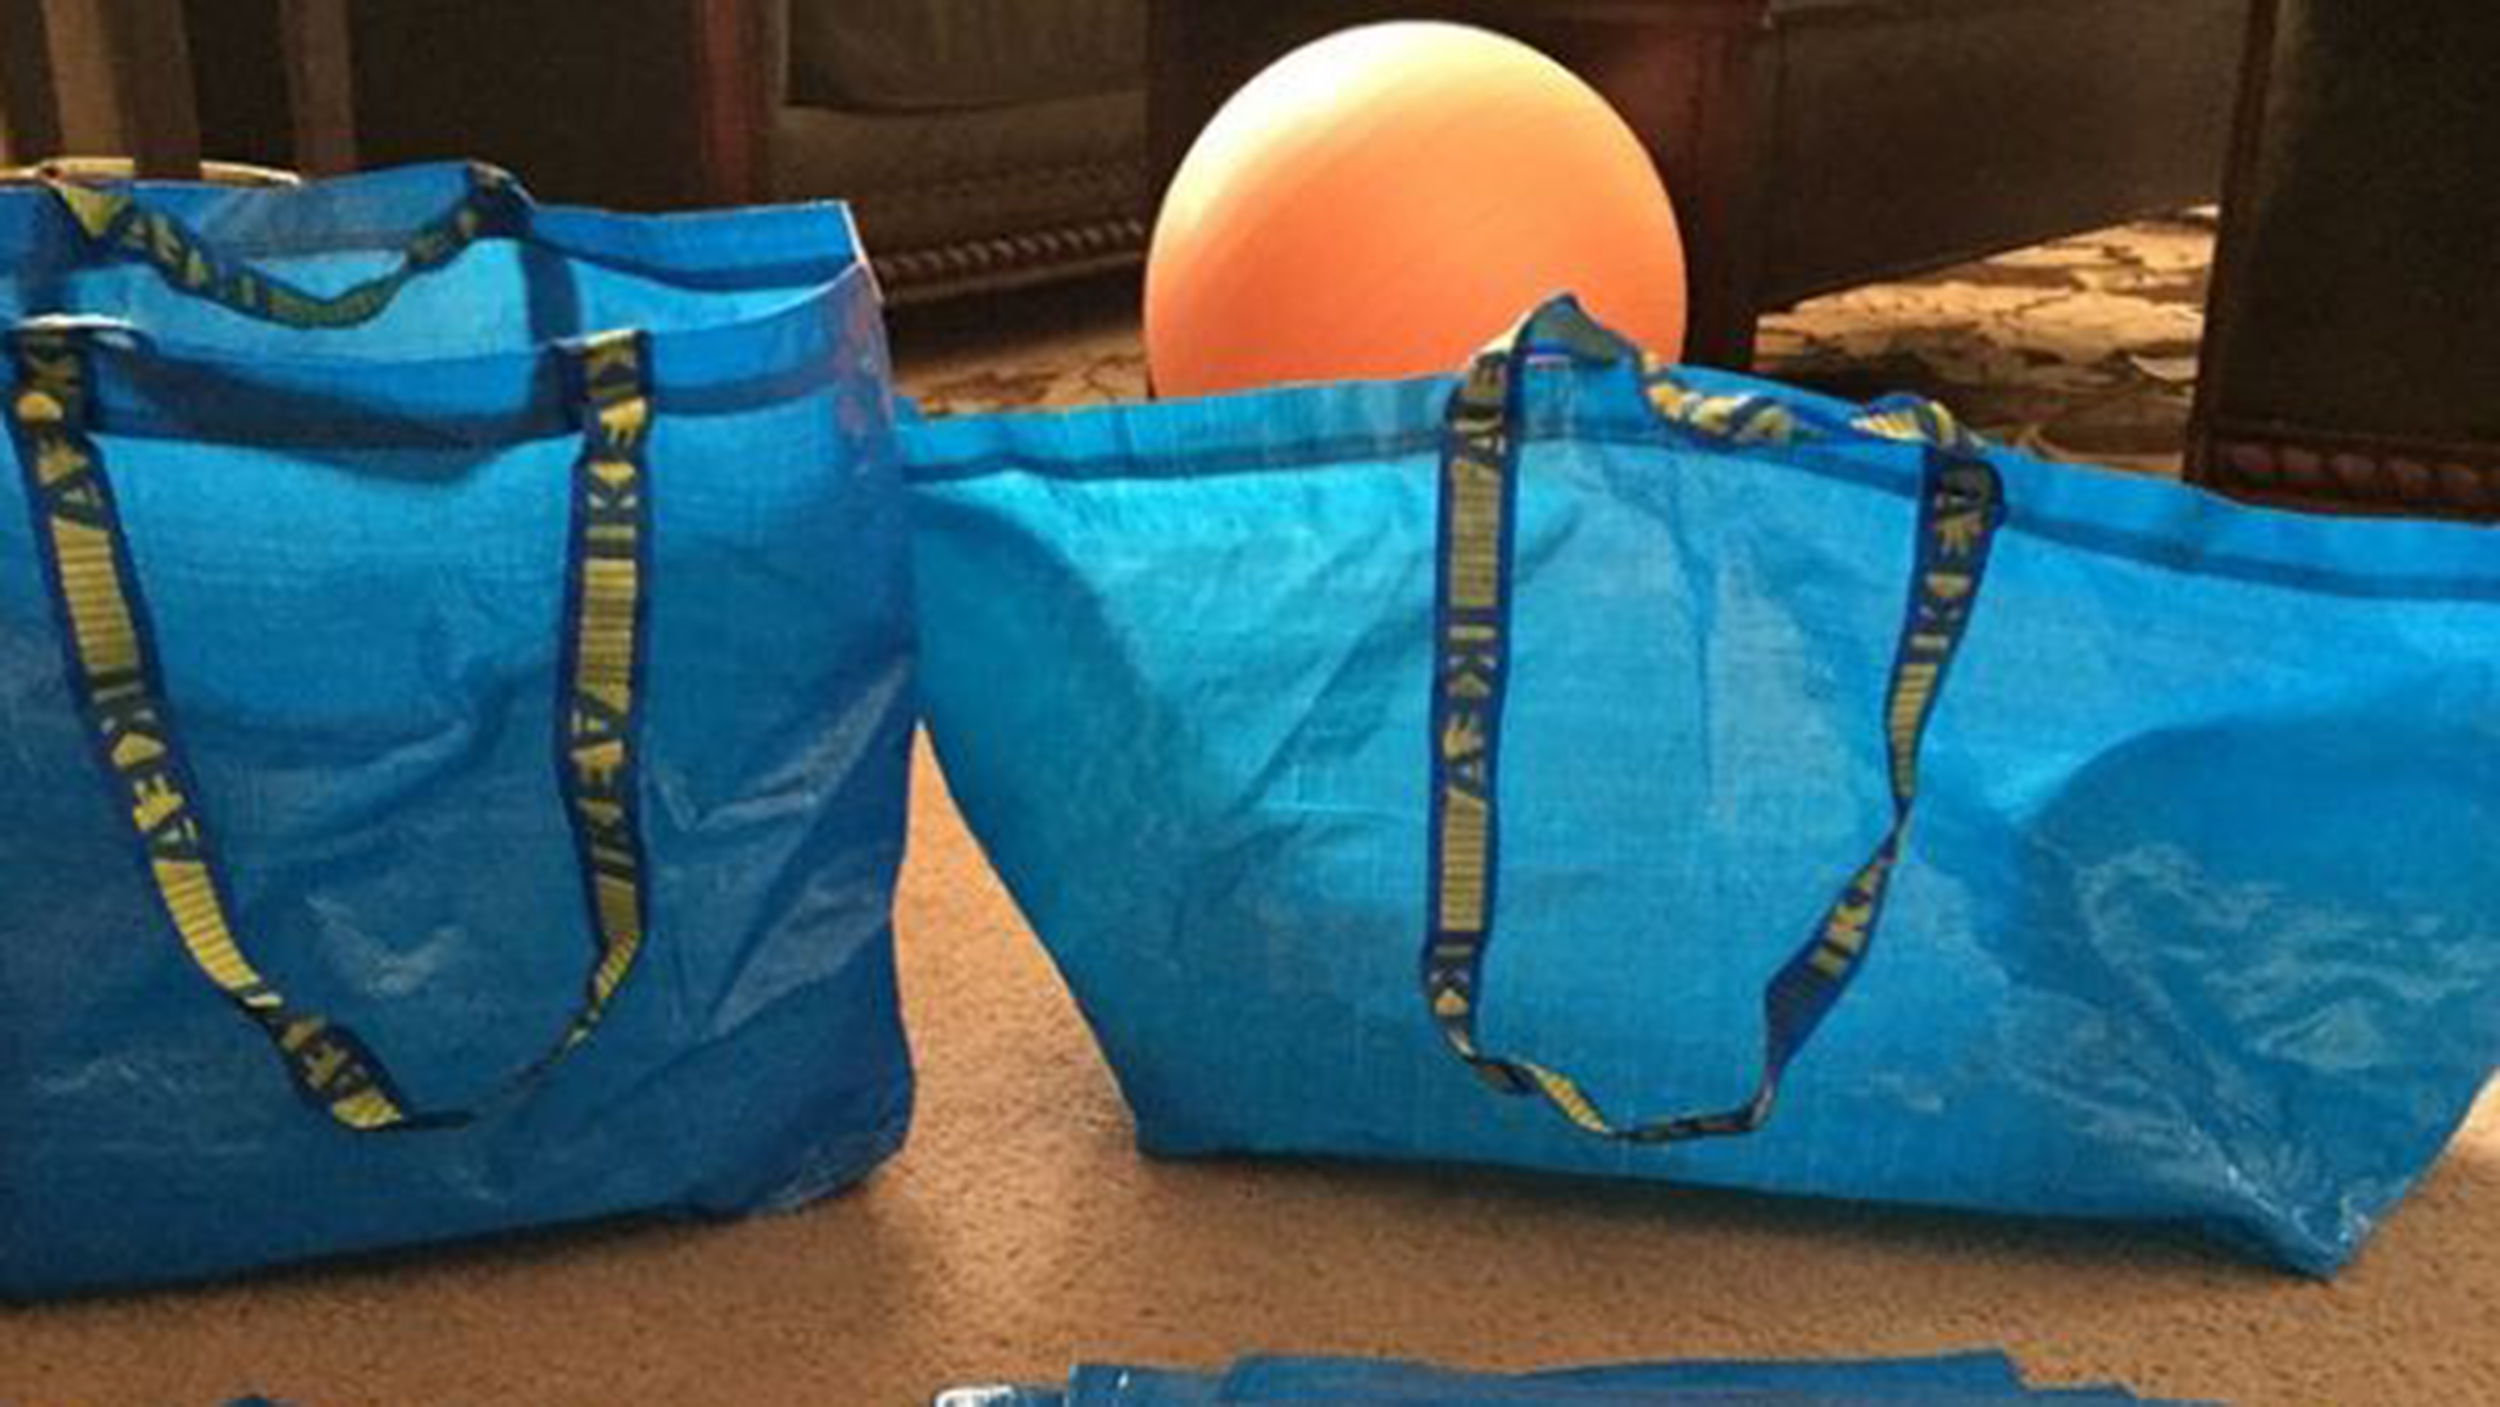 Ikea Pets Ikea Is Losing Its Iconic Blue Bags! Here's What It Has In